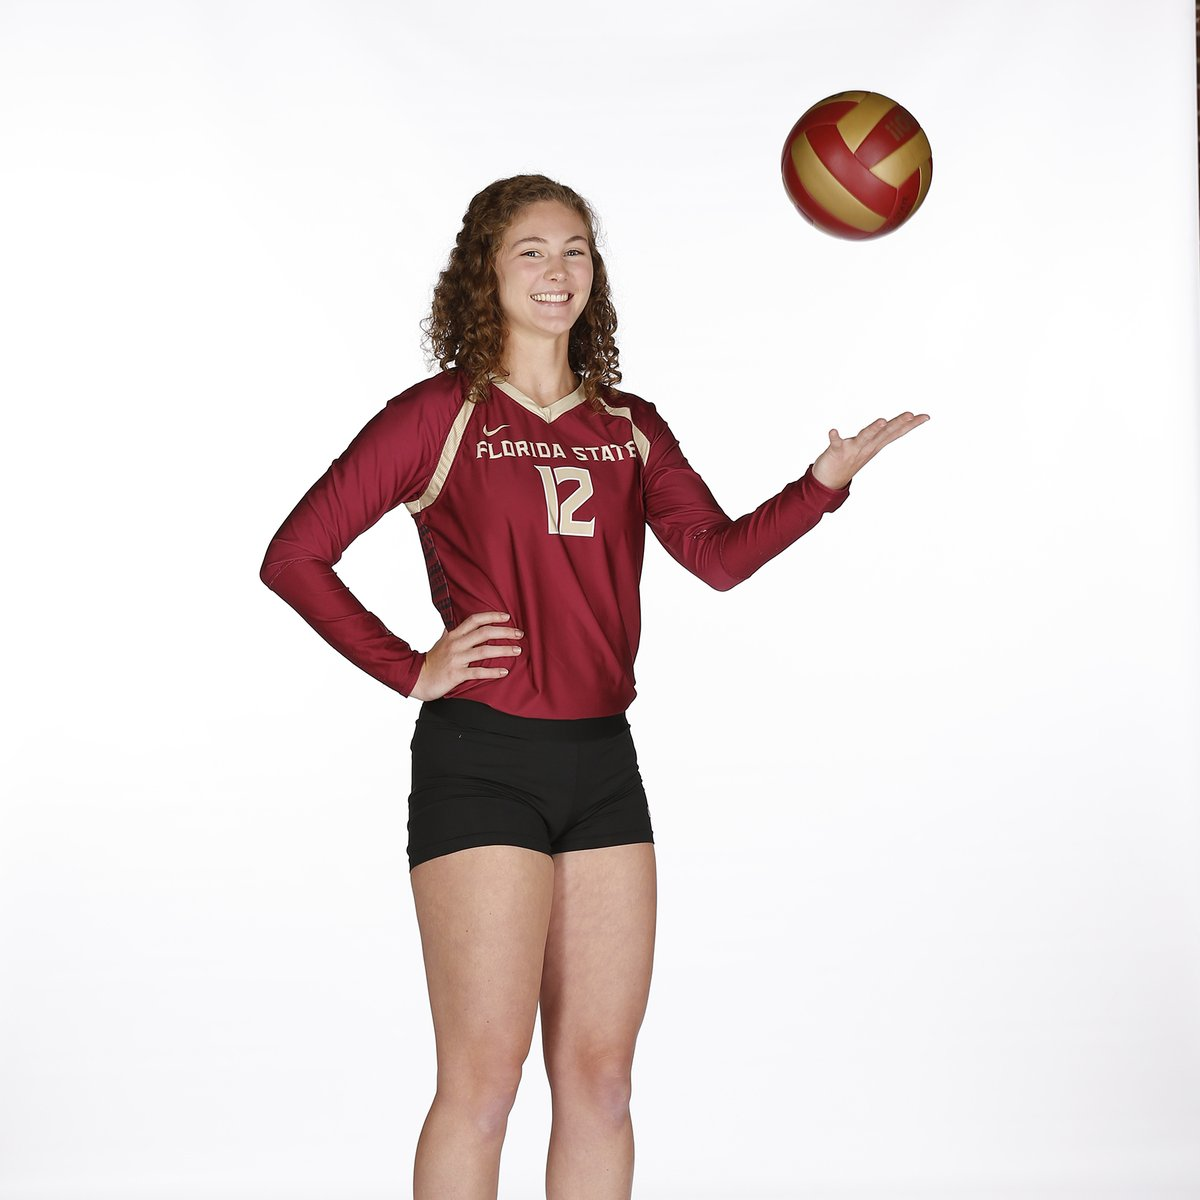 """""""Loren always knows how to put a smile on anyone's face. She is the definition of a giving teammate.""""  """"I LOVE Loren's work ethic.""""  """"Loren has such passion for the game & we're so excited to see her hard work, & intelligence pay off in her career at FSU.""""  #GoNoles https://t.co/GpU9cicI0O"""